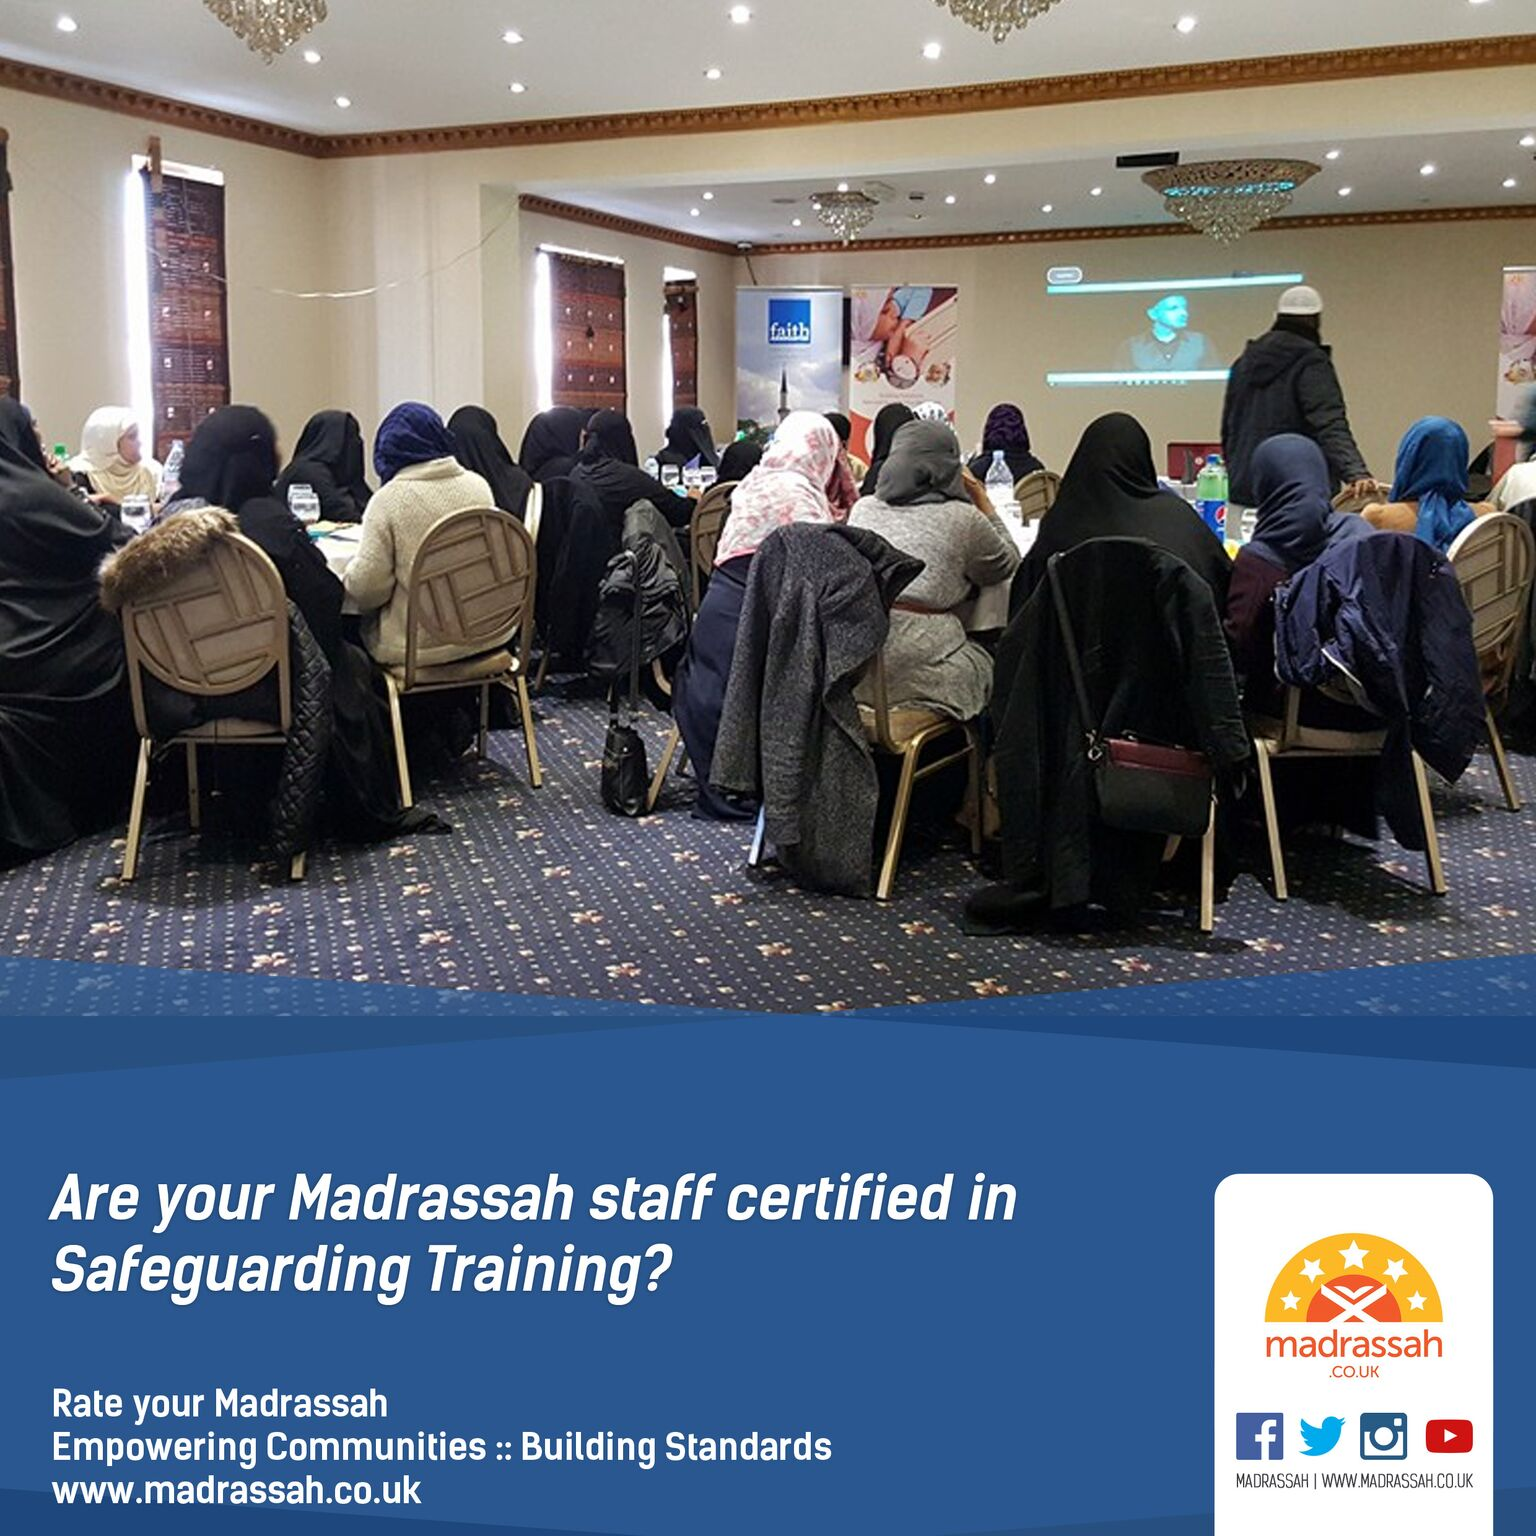 Are your Madrassah staff Level 1 Safeguarding certified